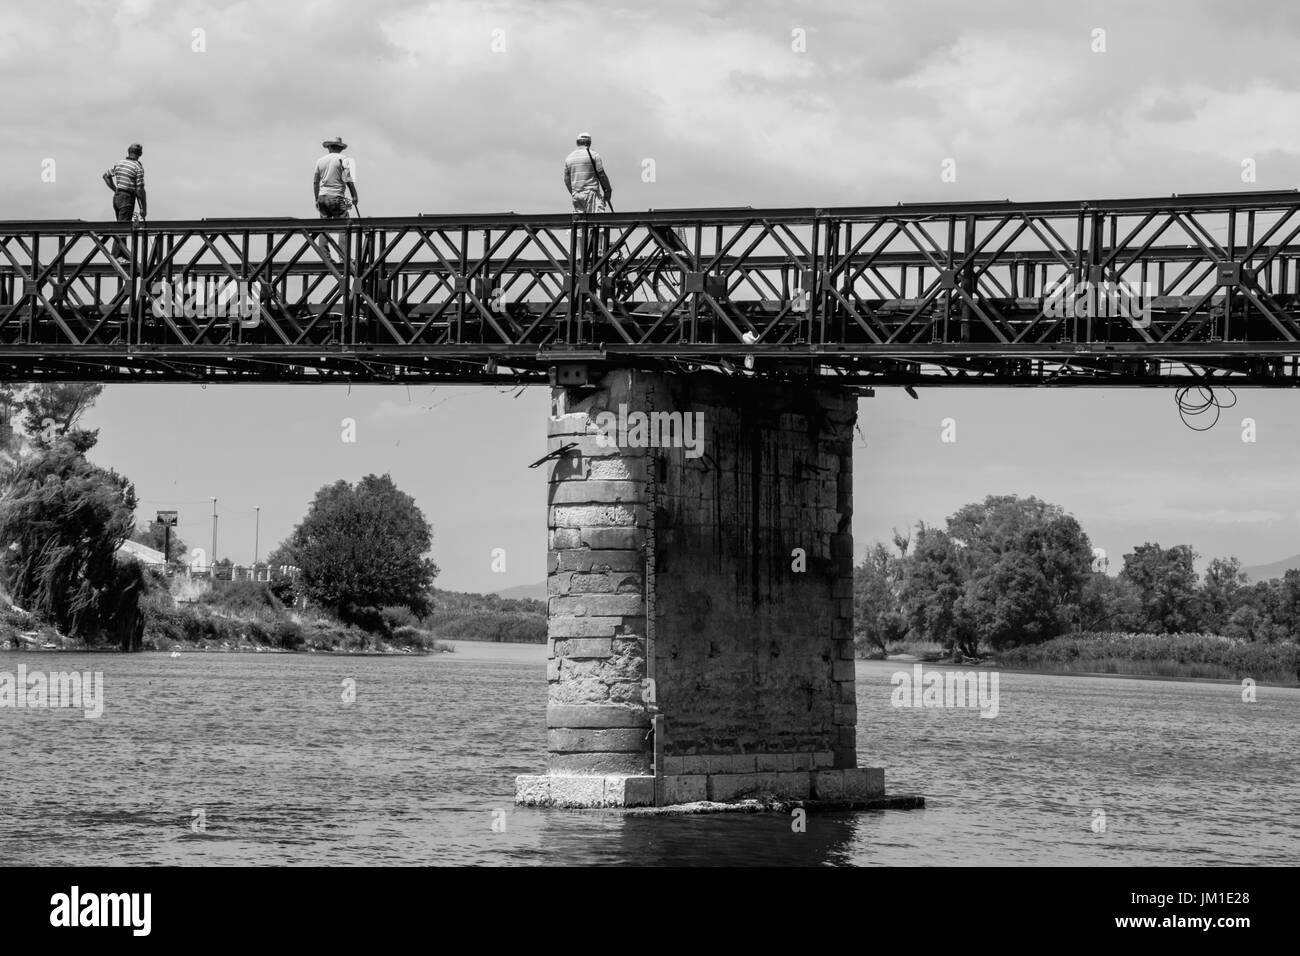 Three fishermen above the bridge - Stock Image